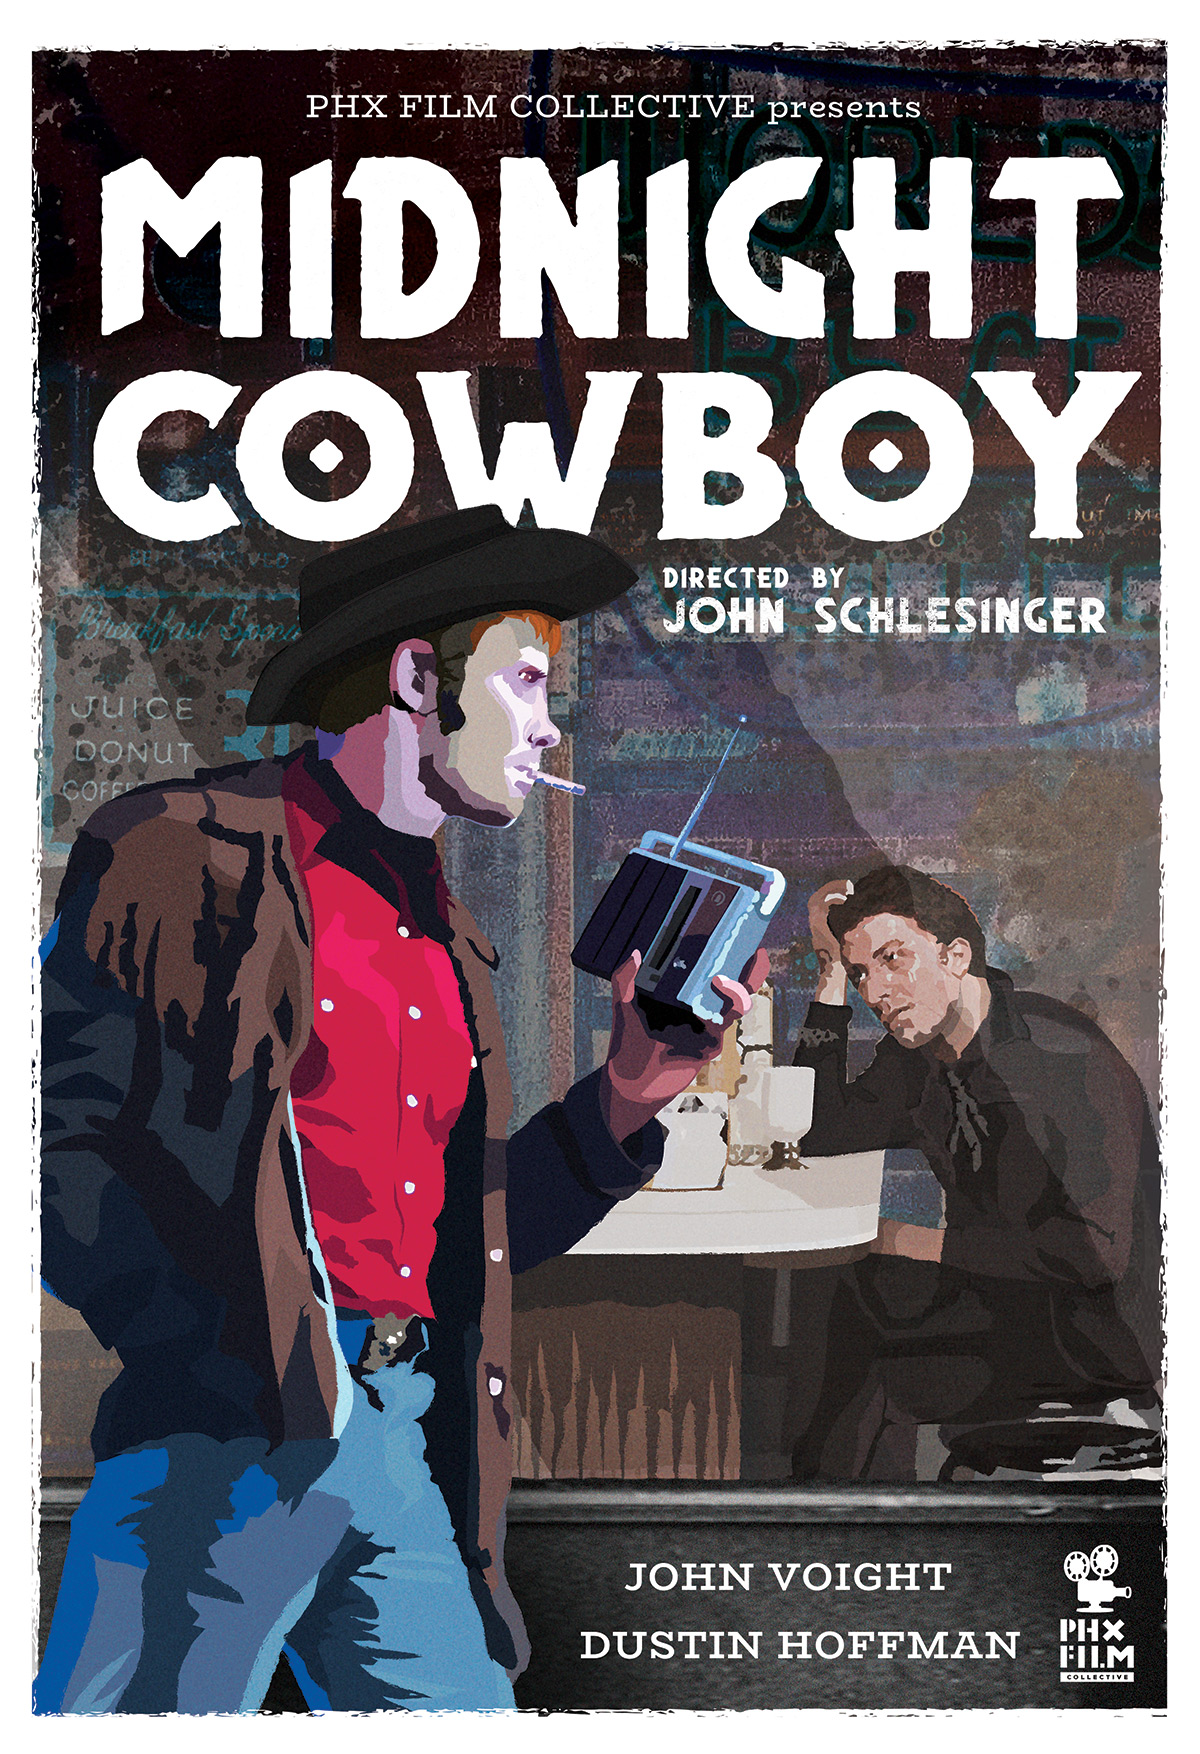 Midnight-Cowboy-poster-digital.jpg